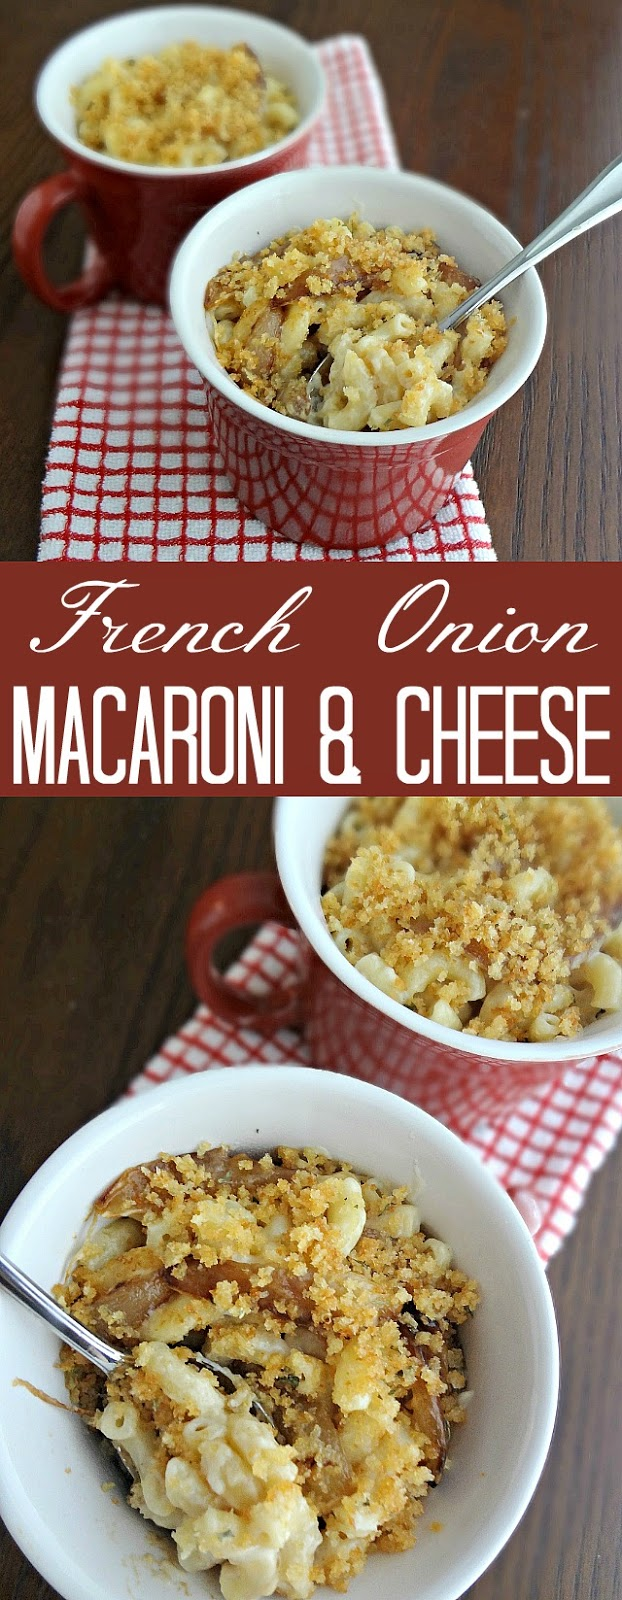 French Onion Macaroni and Cheese